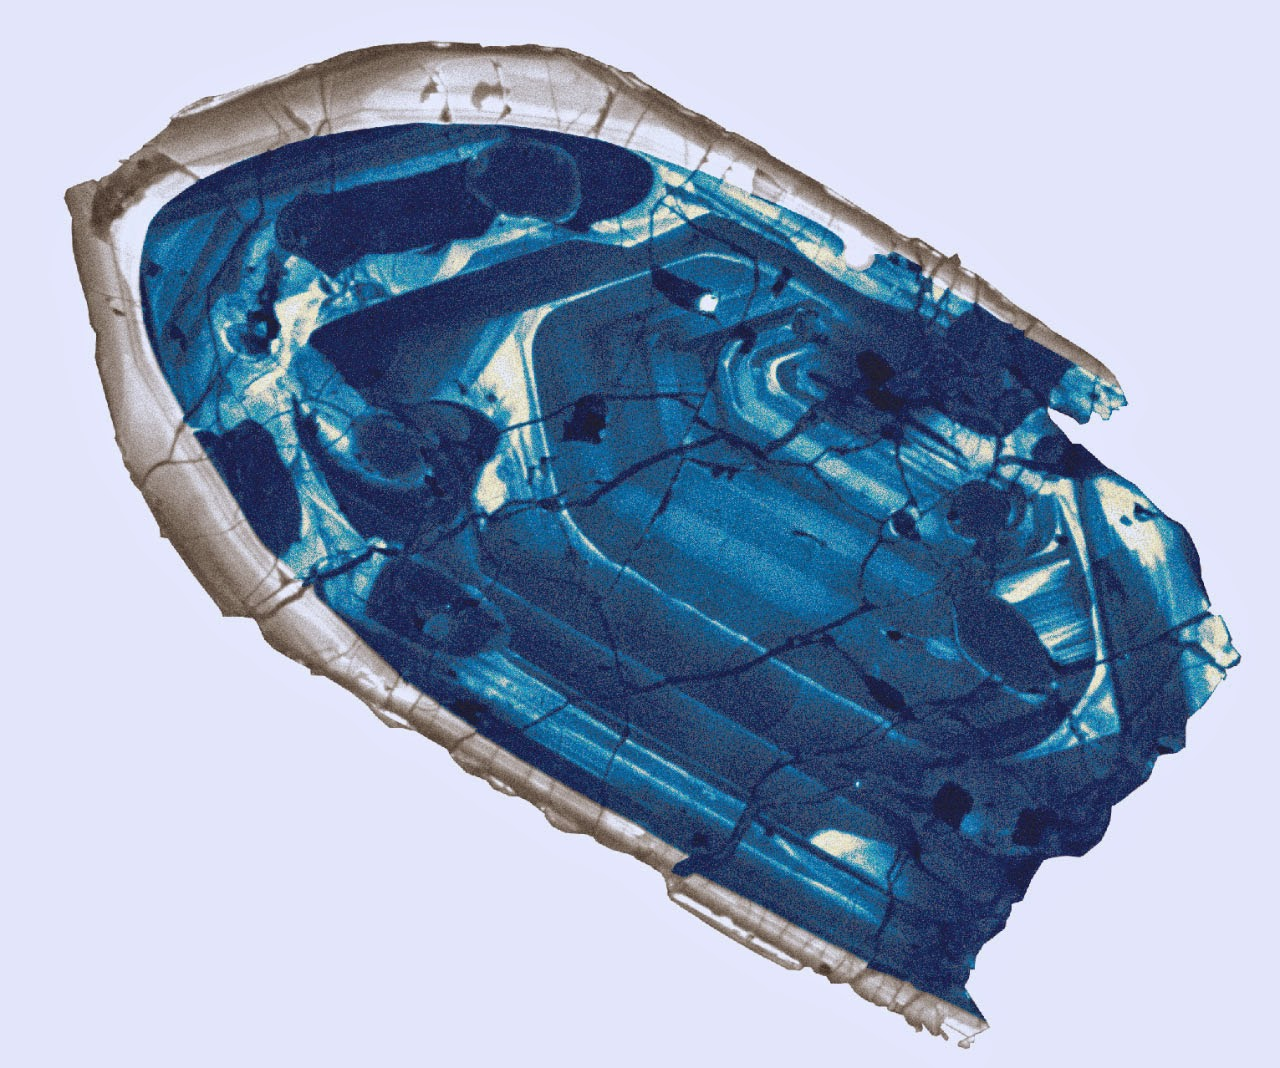 Zircon Crystal is 'oldest scrap of Earth crust'